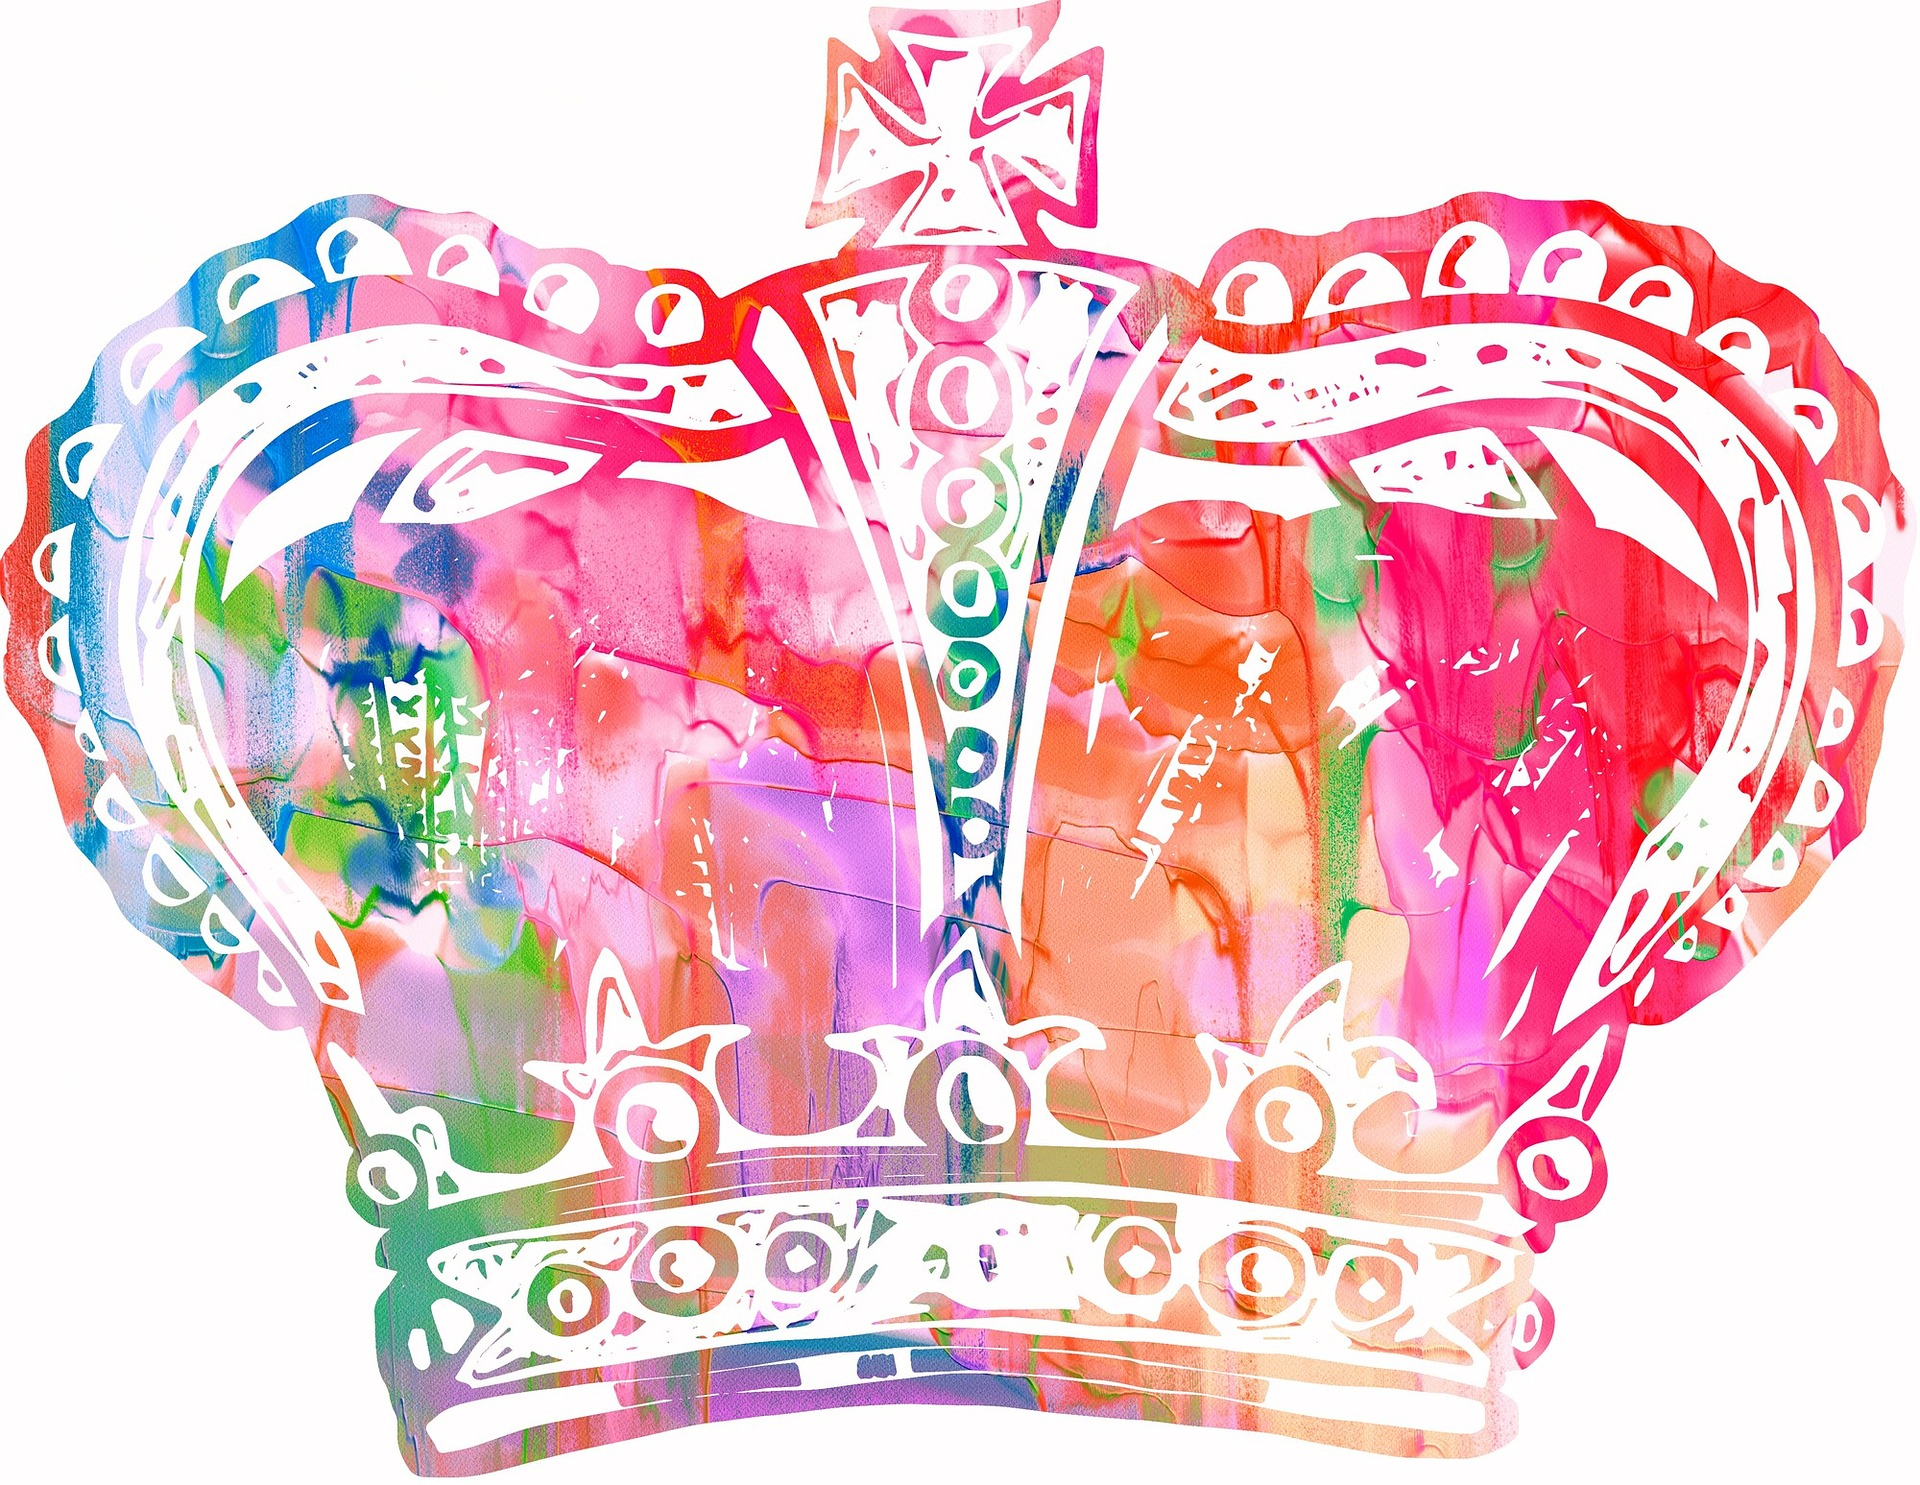 Queen's crown in bright red, blue, purple and green